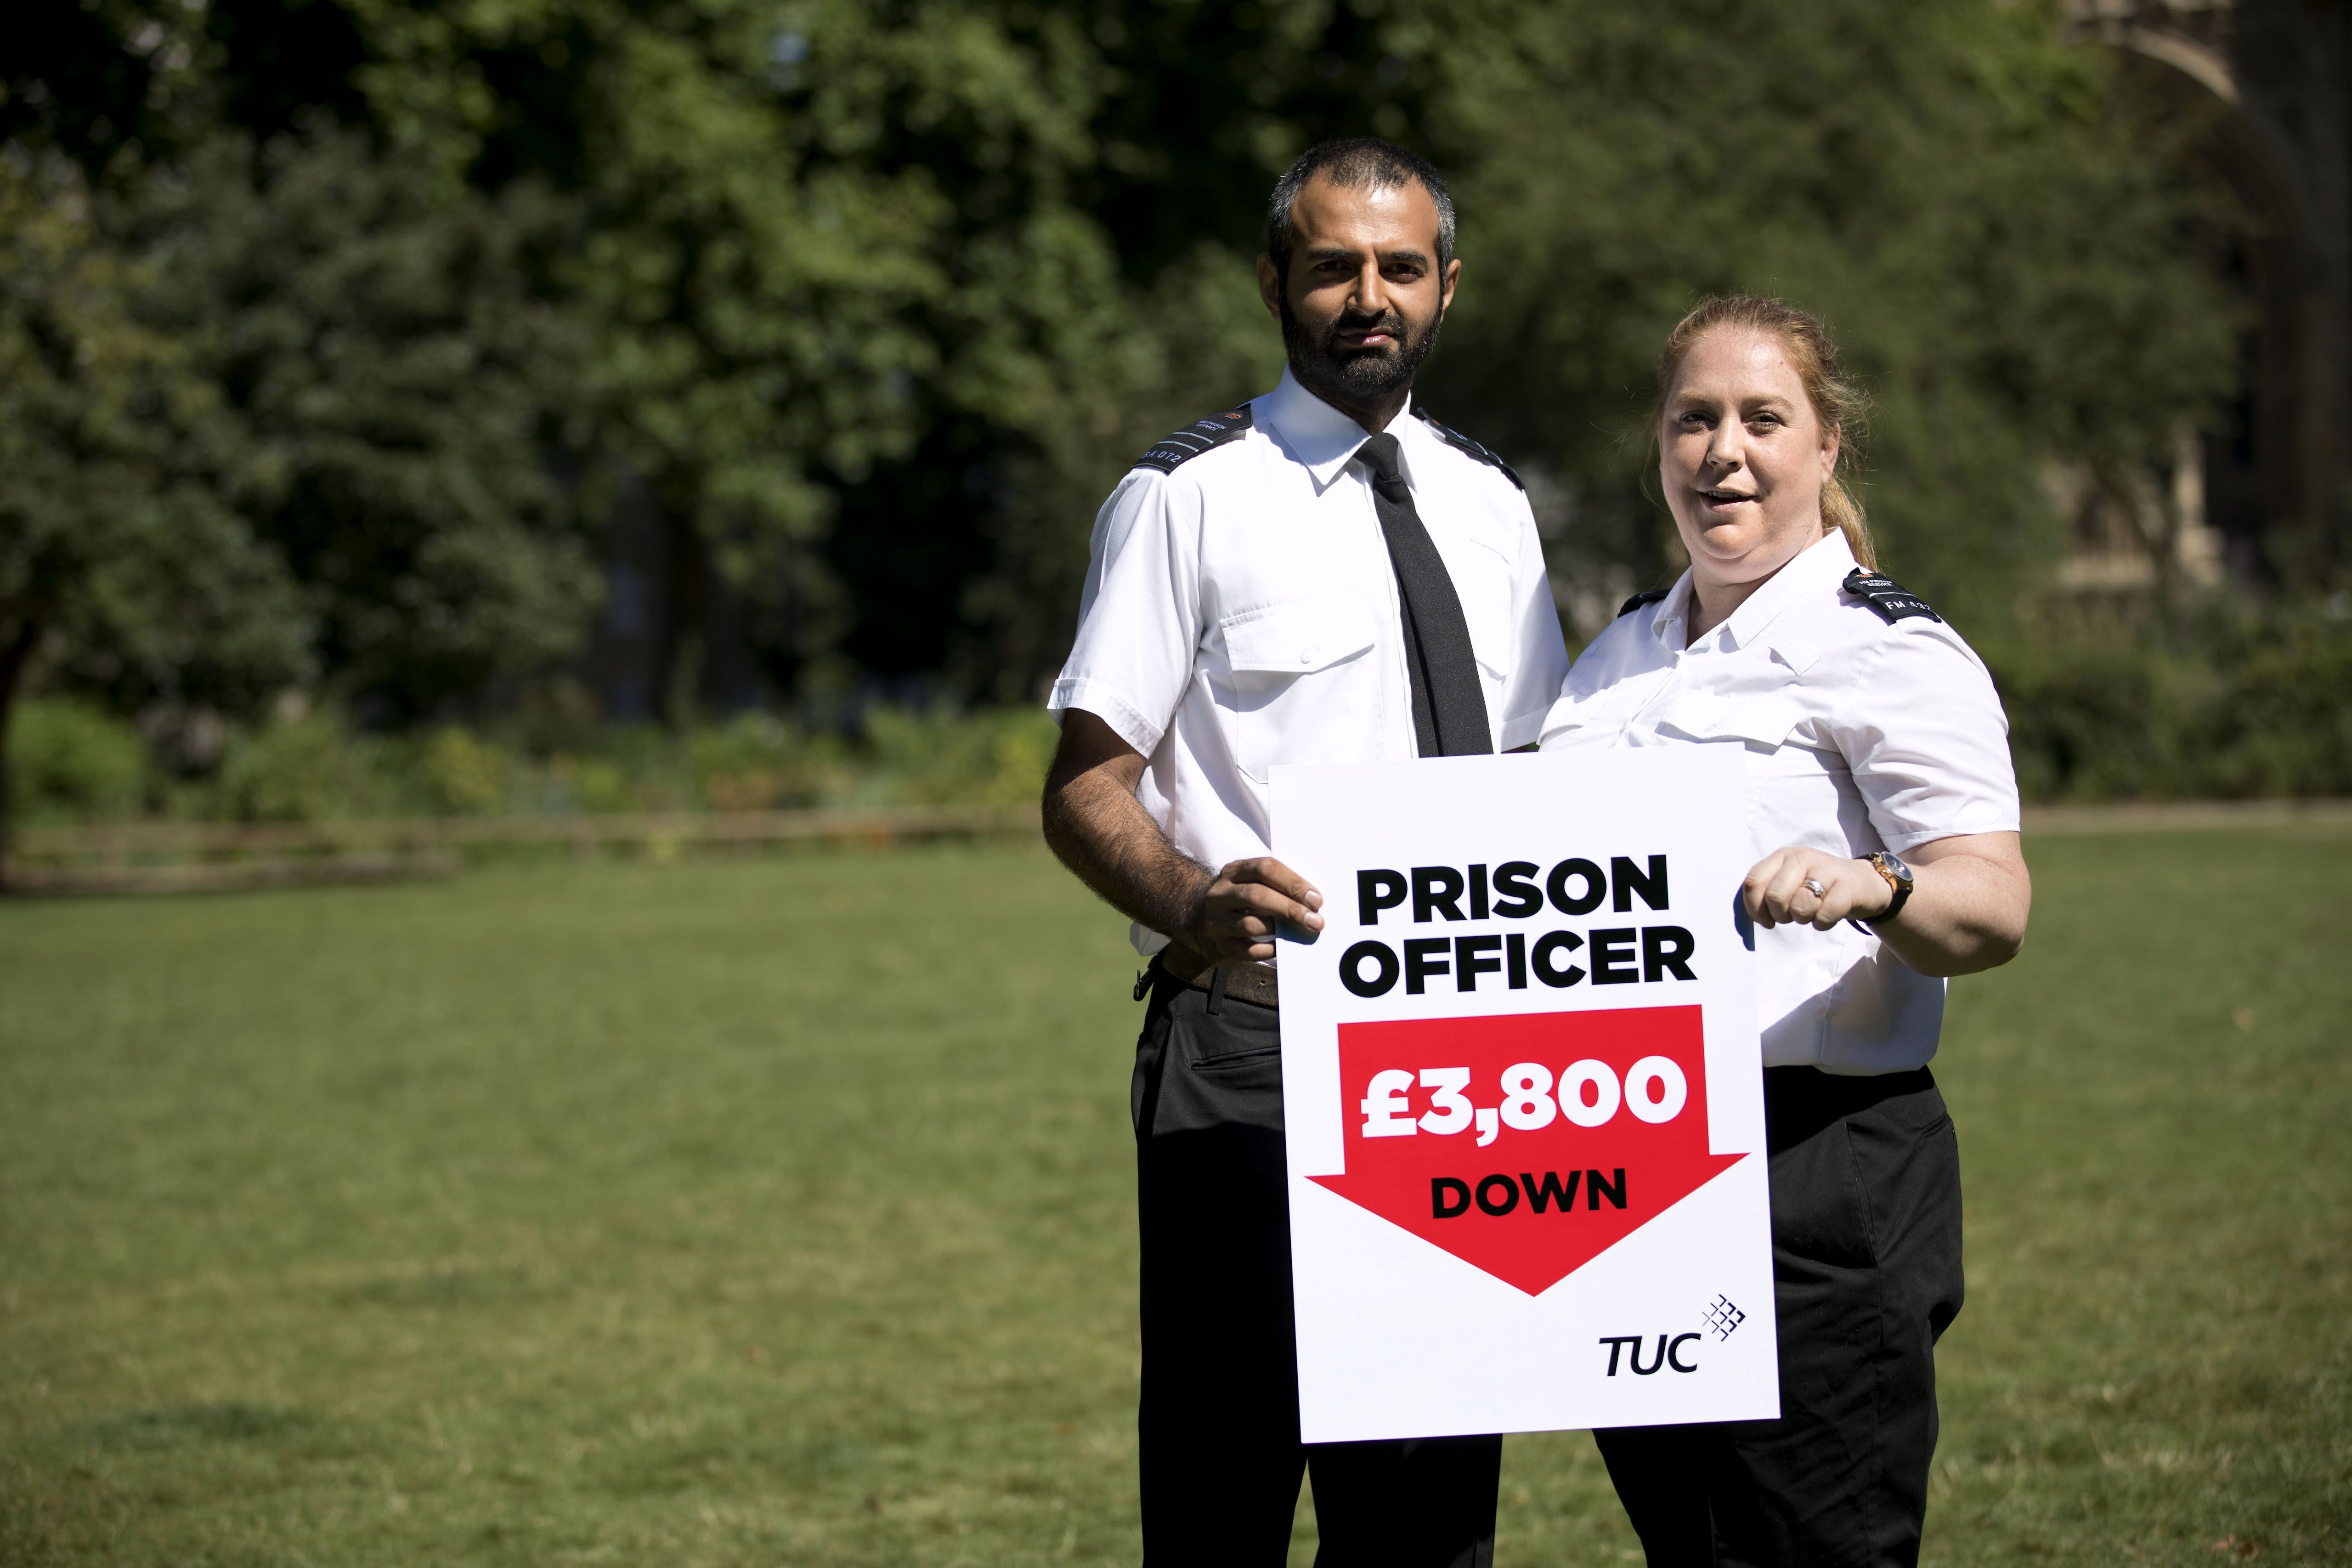 After seven years of pay cuts, I'm not proud to be a prison